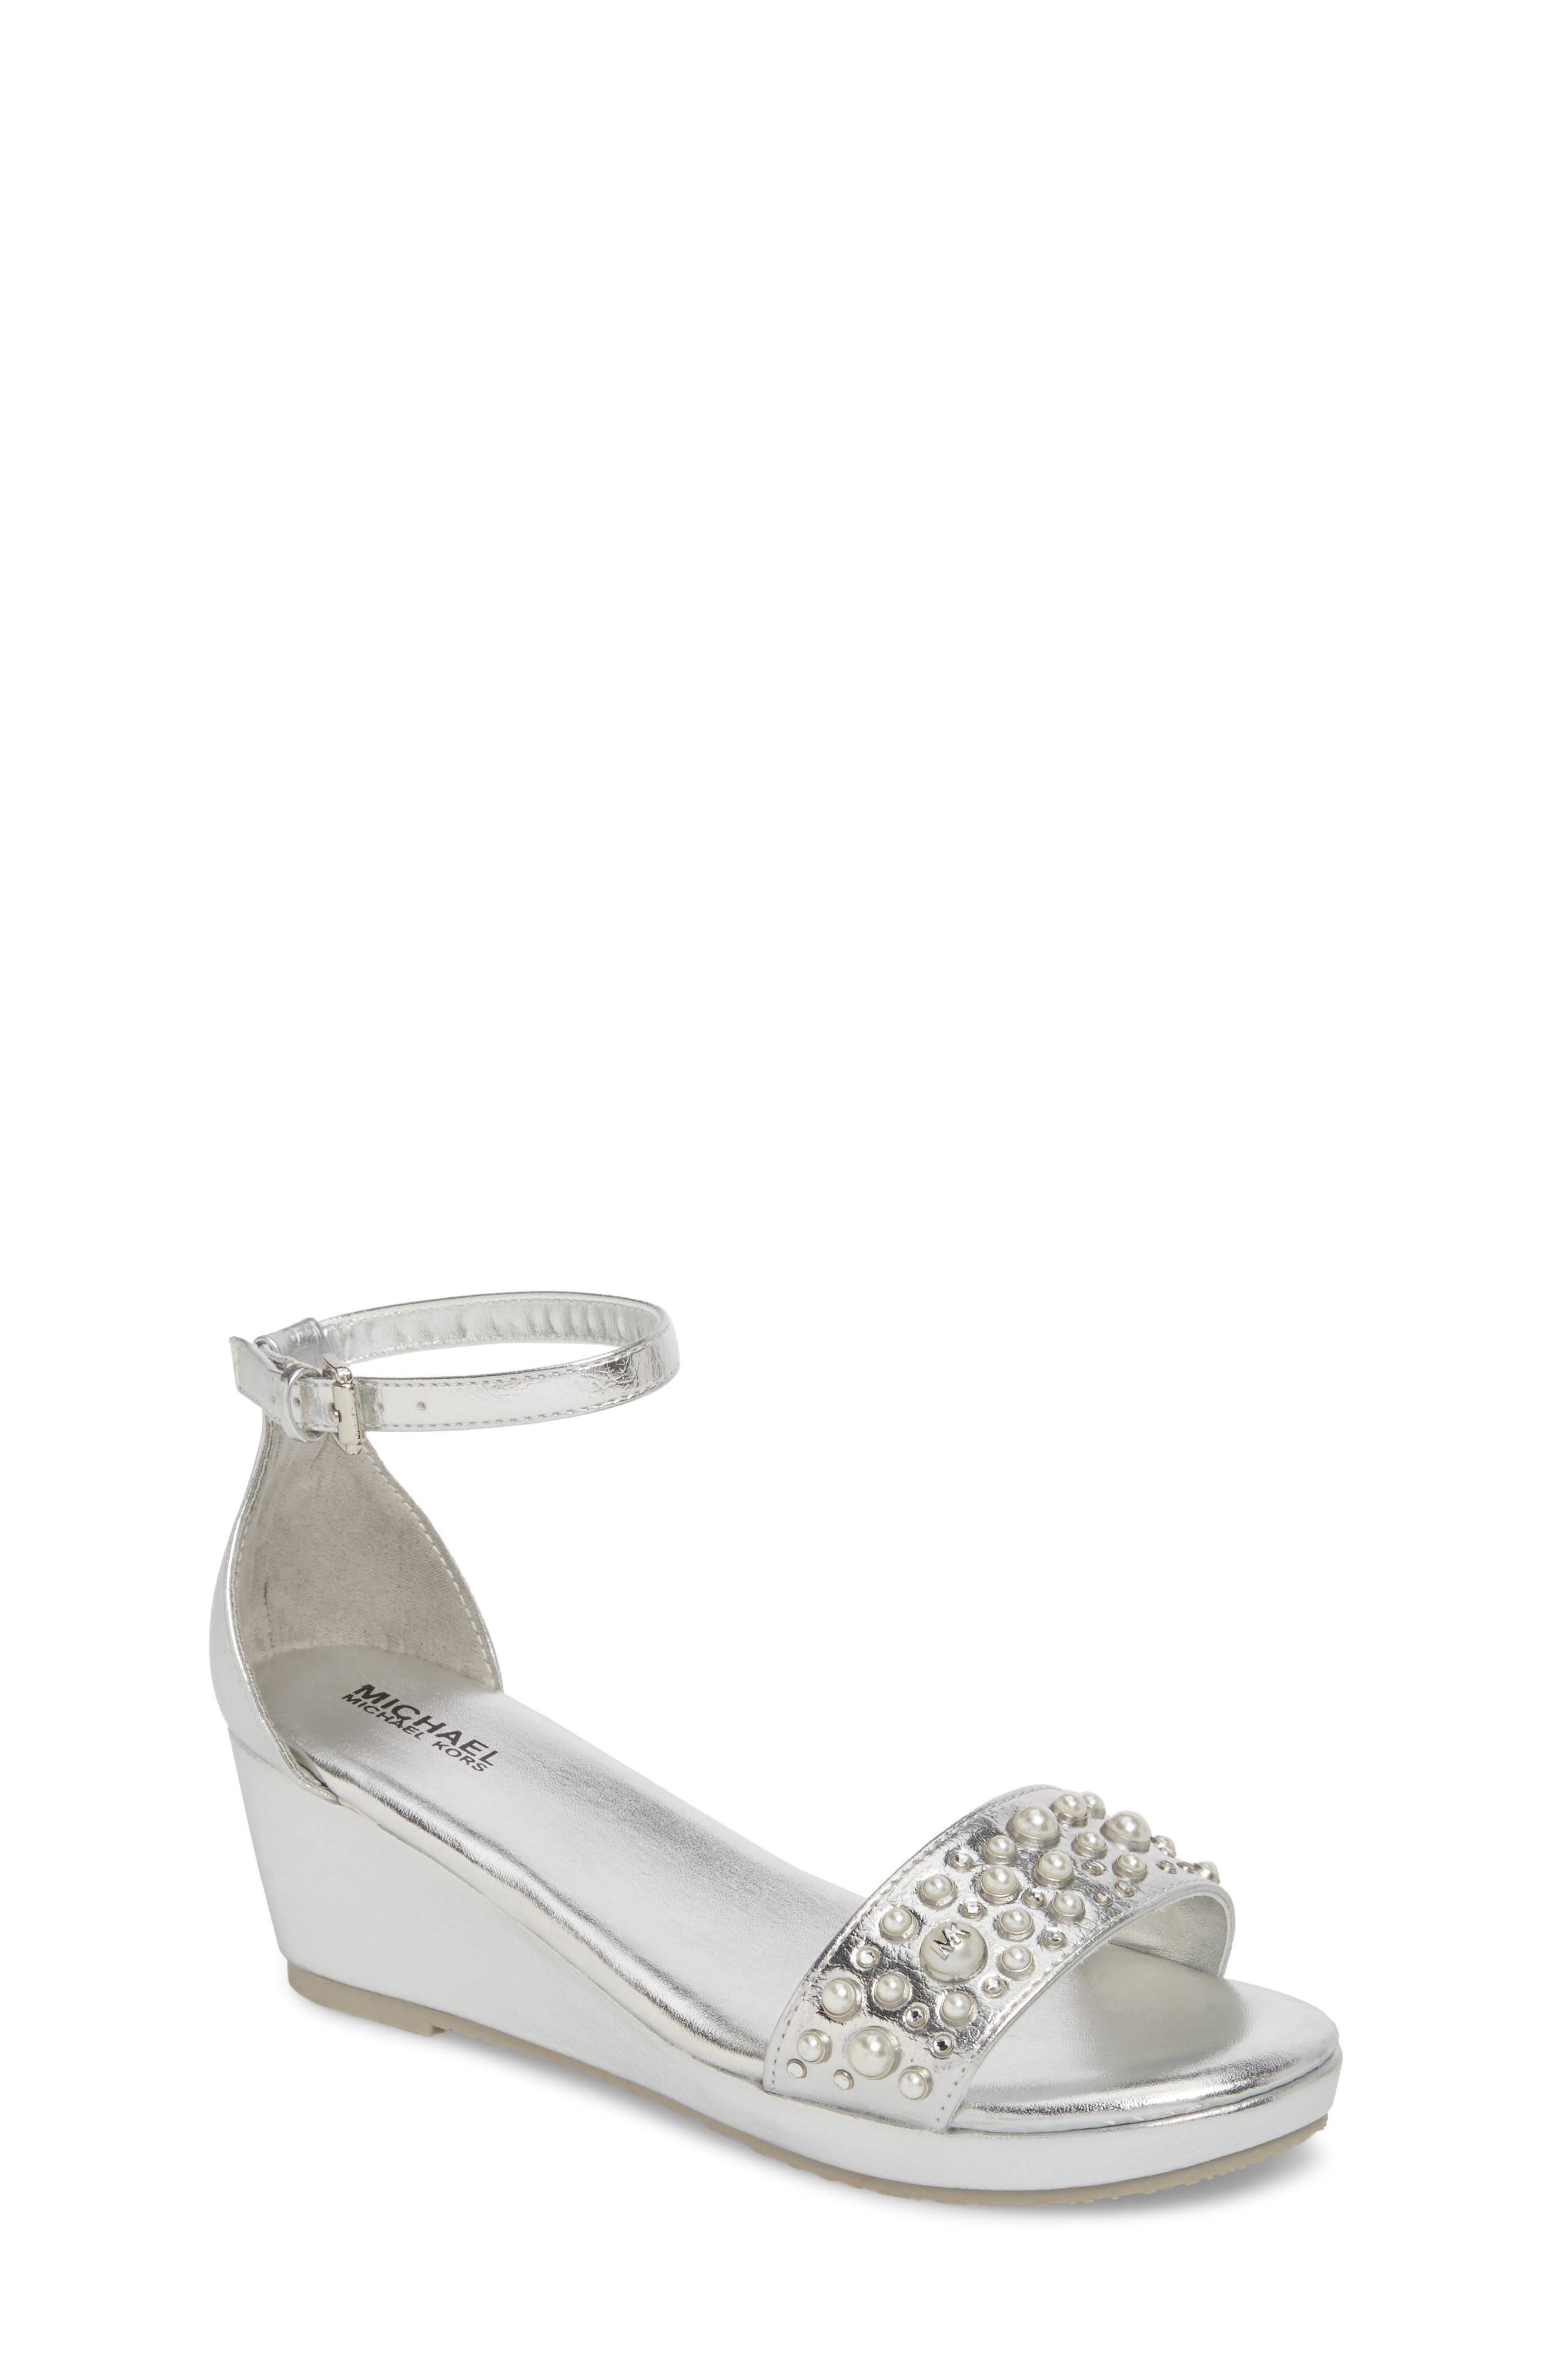 Cate Embellished Wedge Sandal,                         Main,                         color, Silver